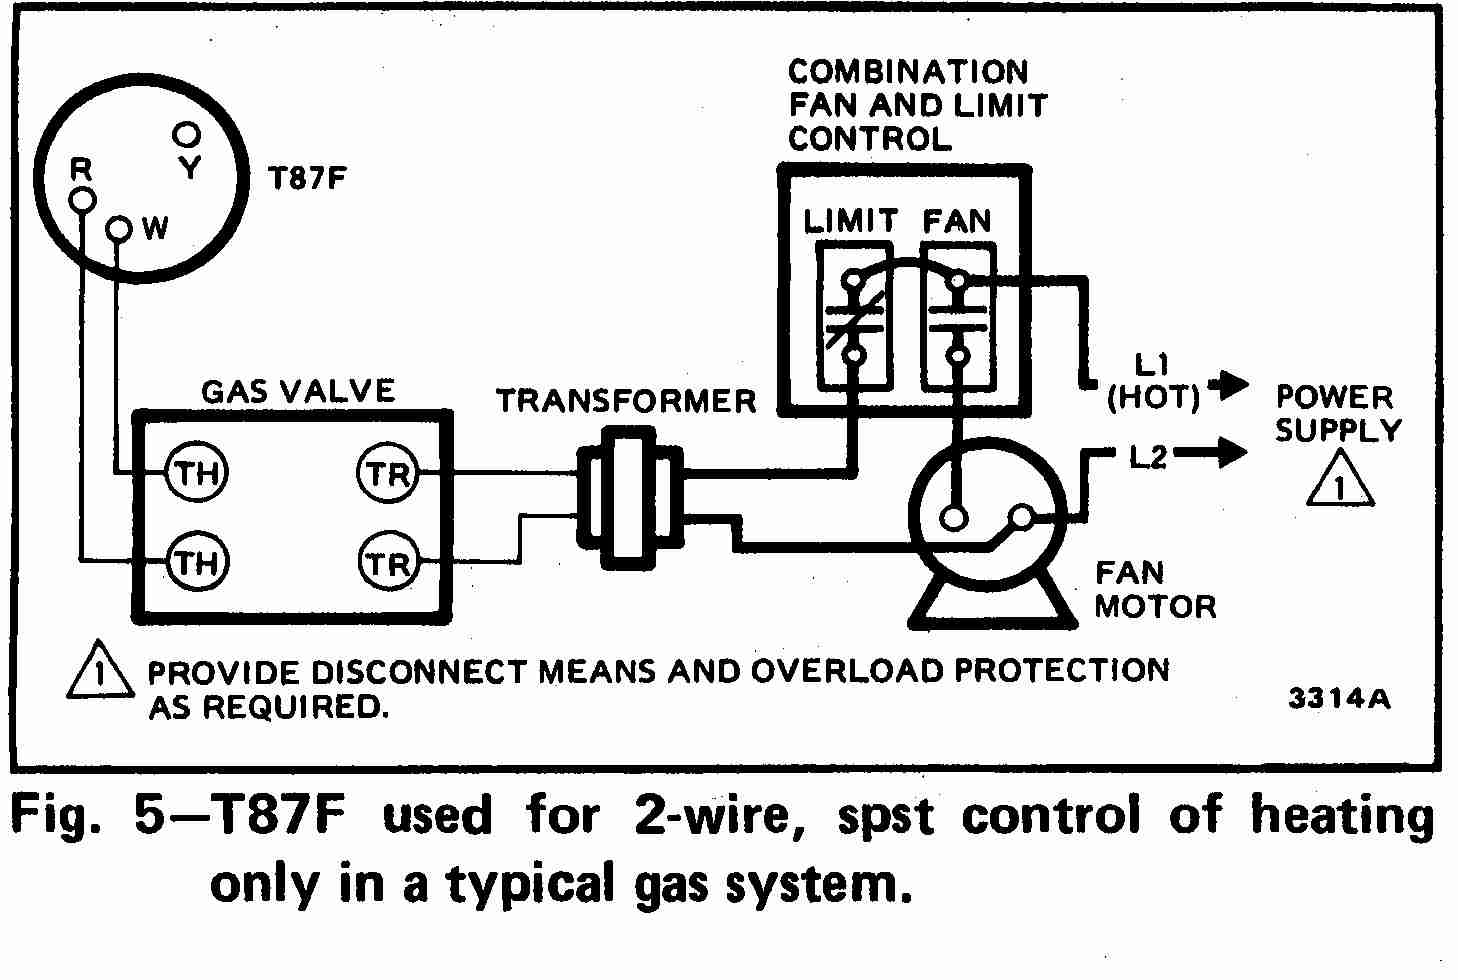 TT_T87F_0002_2Wg_DJF space heater wiring diagram s700 electric heater wire diagram electric space heater wiring diagram at readyjetset.co